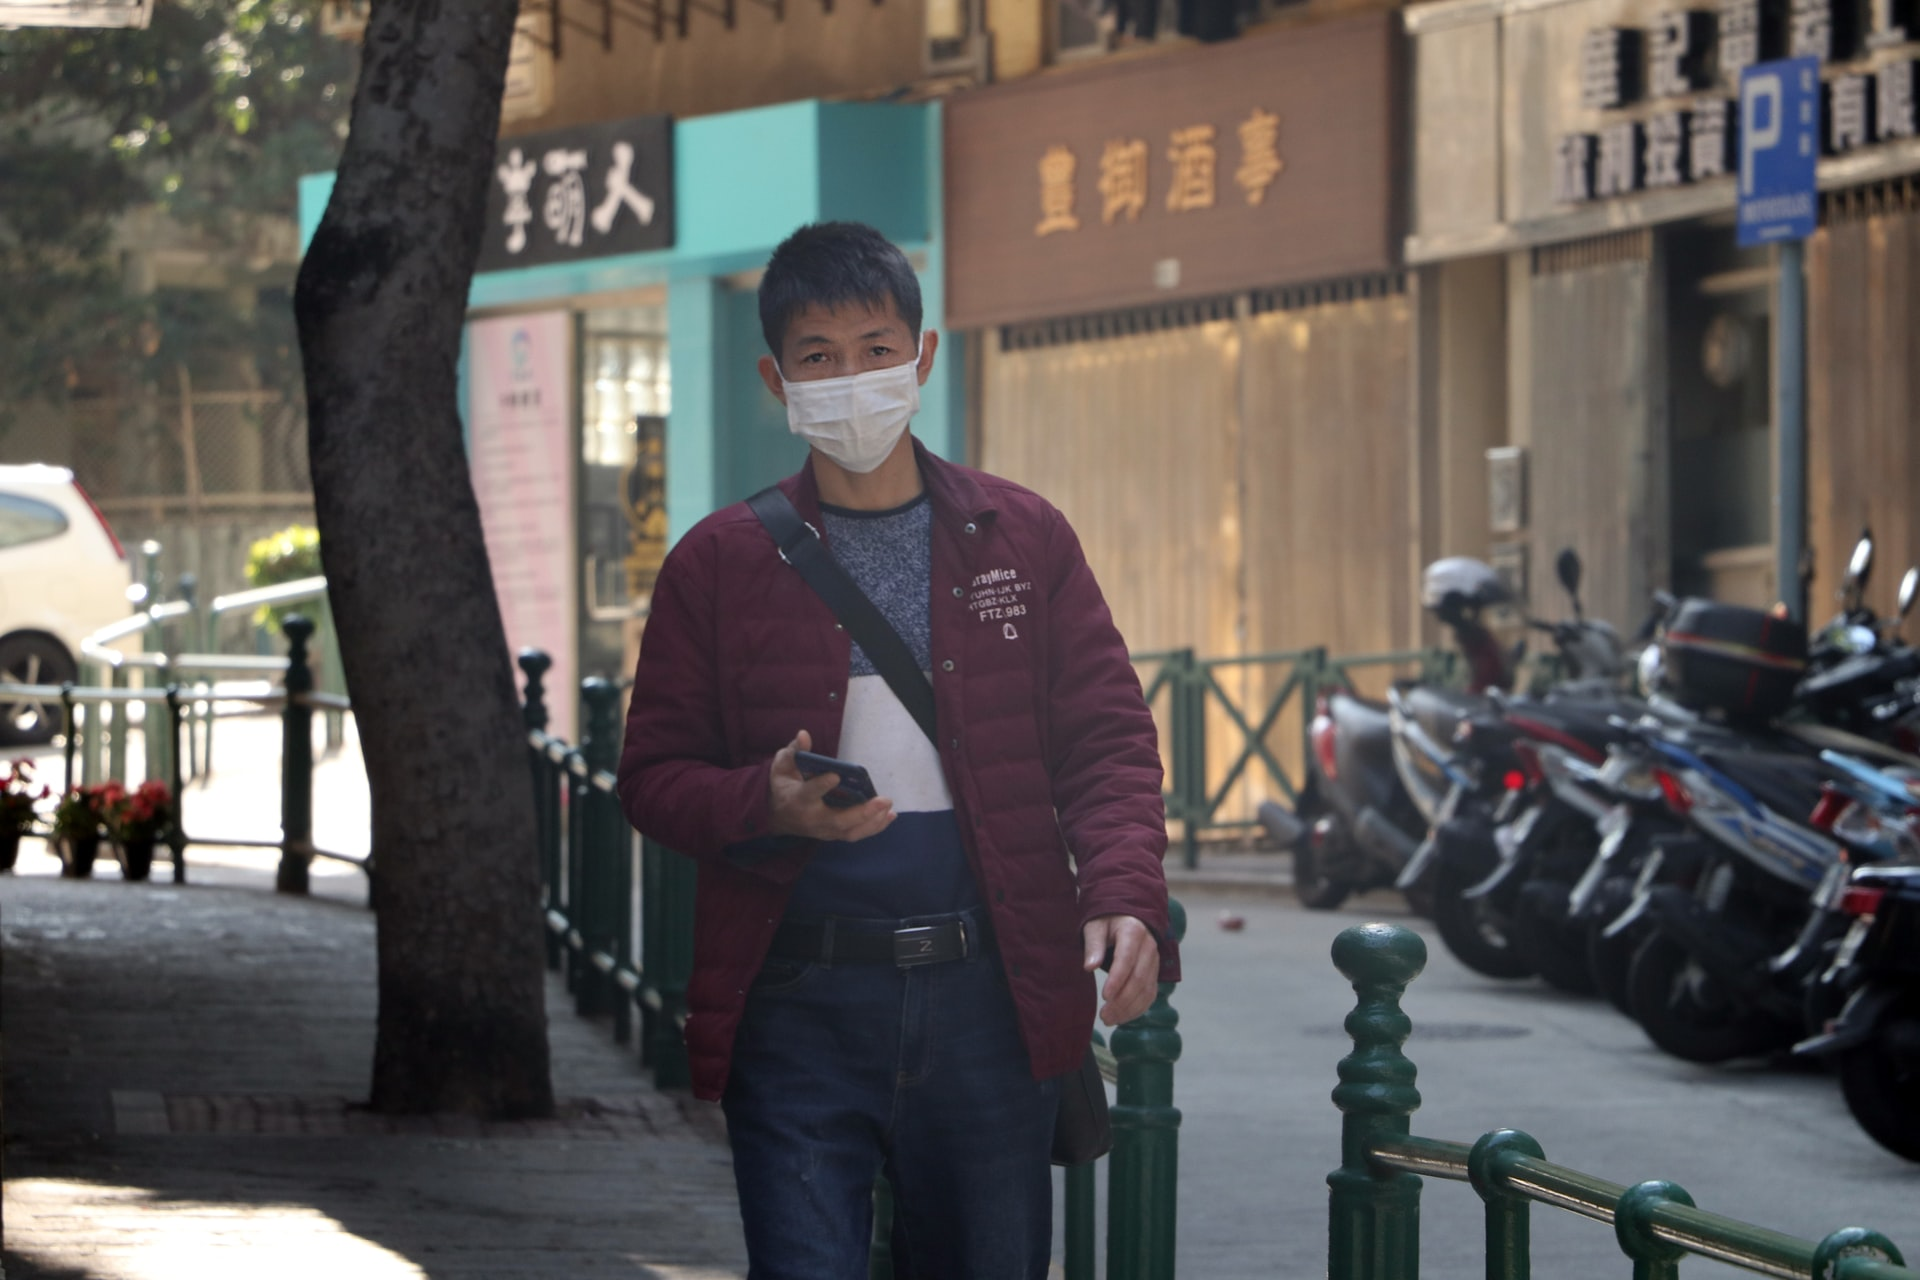 A man walks on the street in Macau, China wearing a protective mask to prevent infection by the coronavirus.Image: Macau Photo Agency on Unsplash